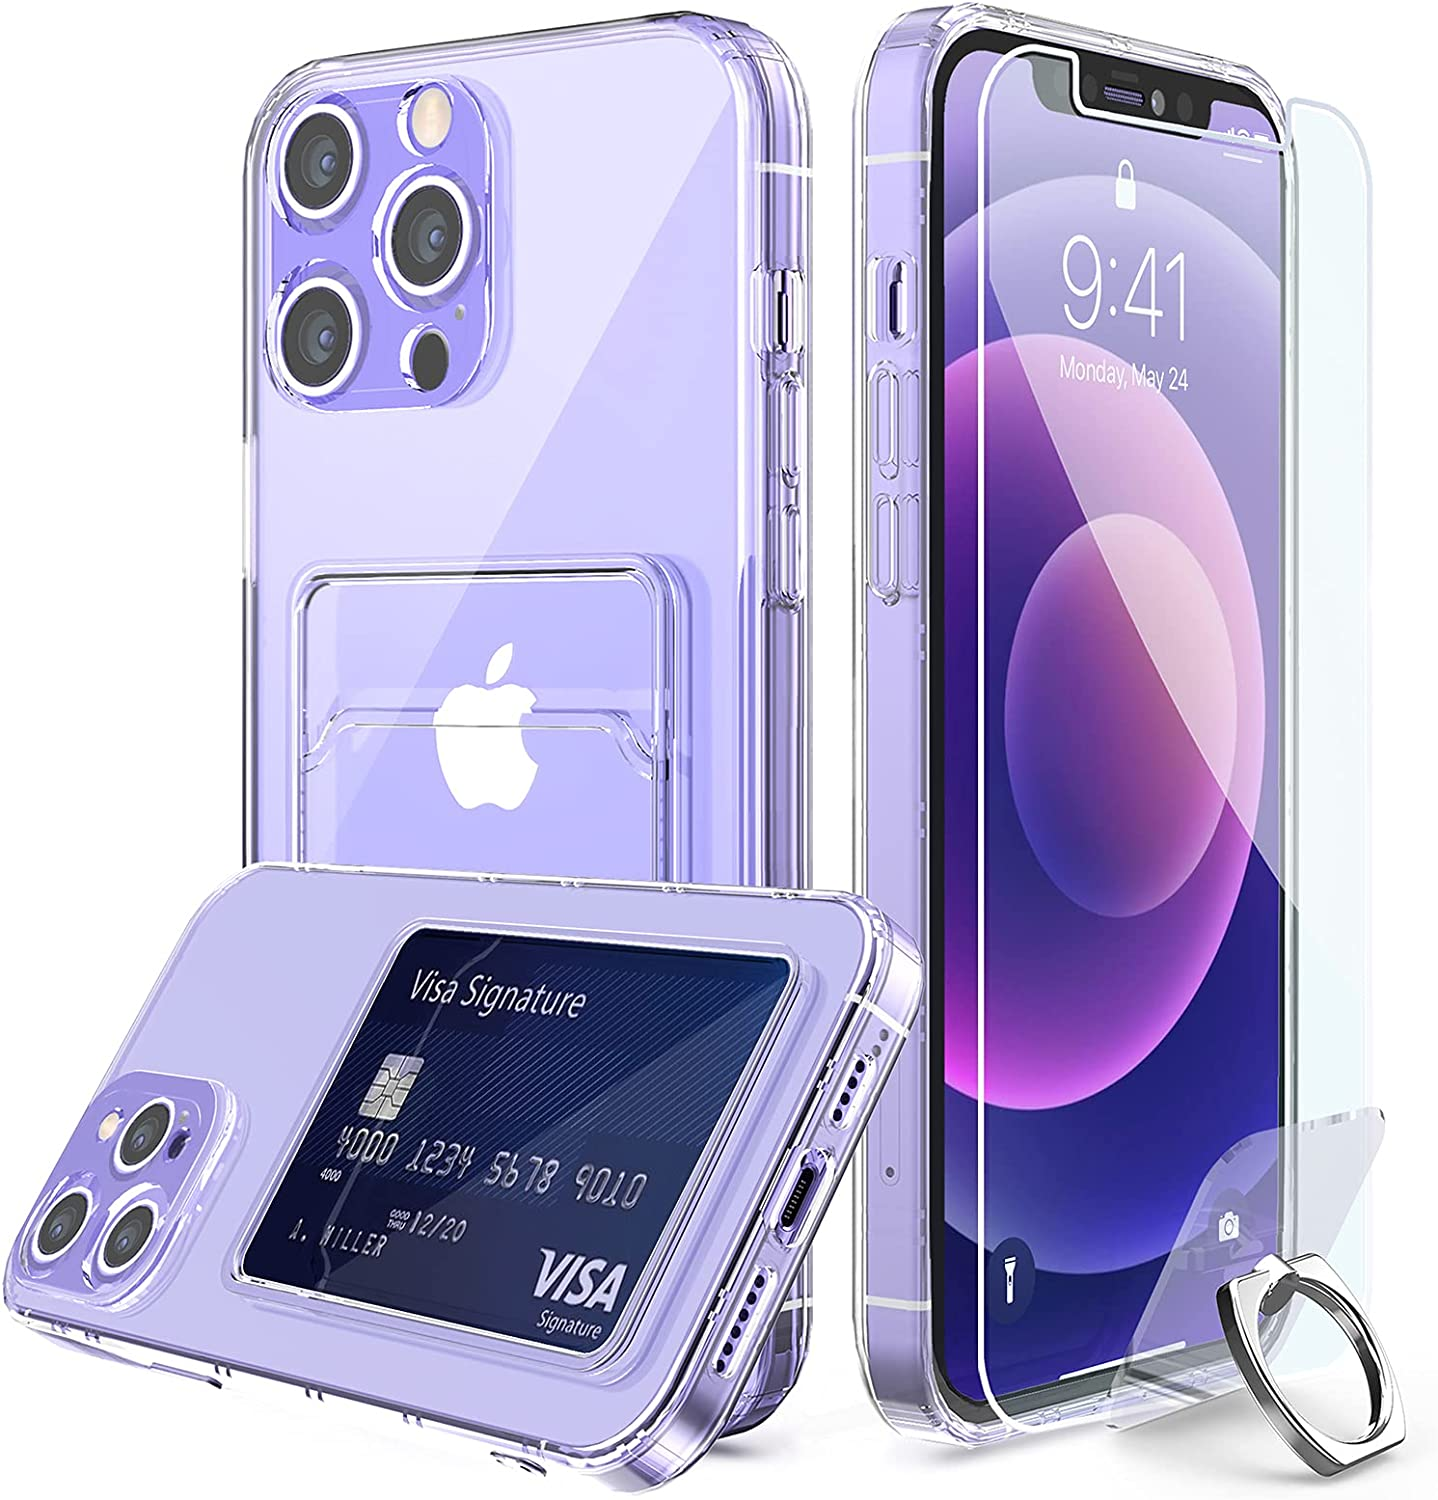 Compatible for iPhone 12 Pro Clear Card Case, with [Ring Holder Kickstand] [Lens Protector] [Screen Protector] Clear 360 Full Body Coverage Protective Shock-Absorbing Wallet Case with Card Holder